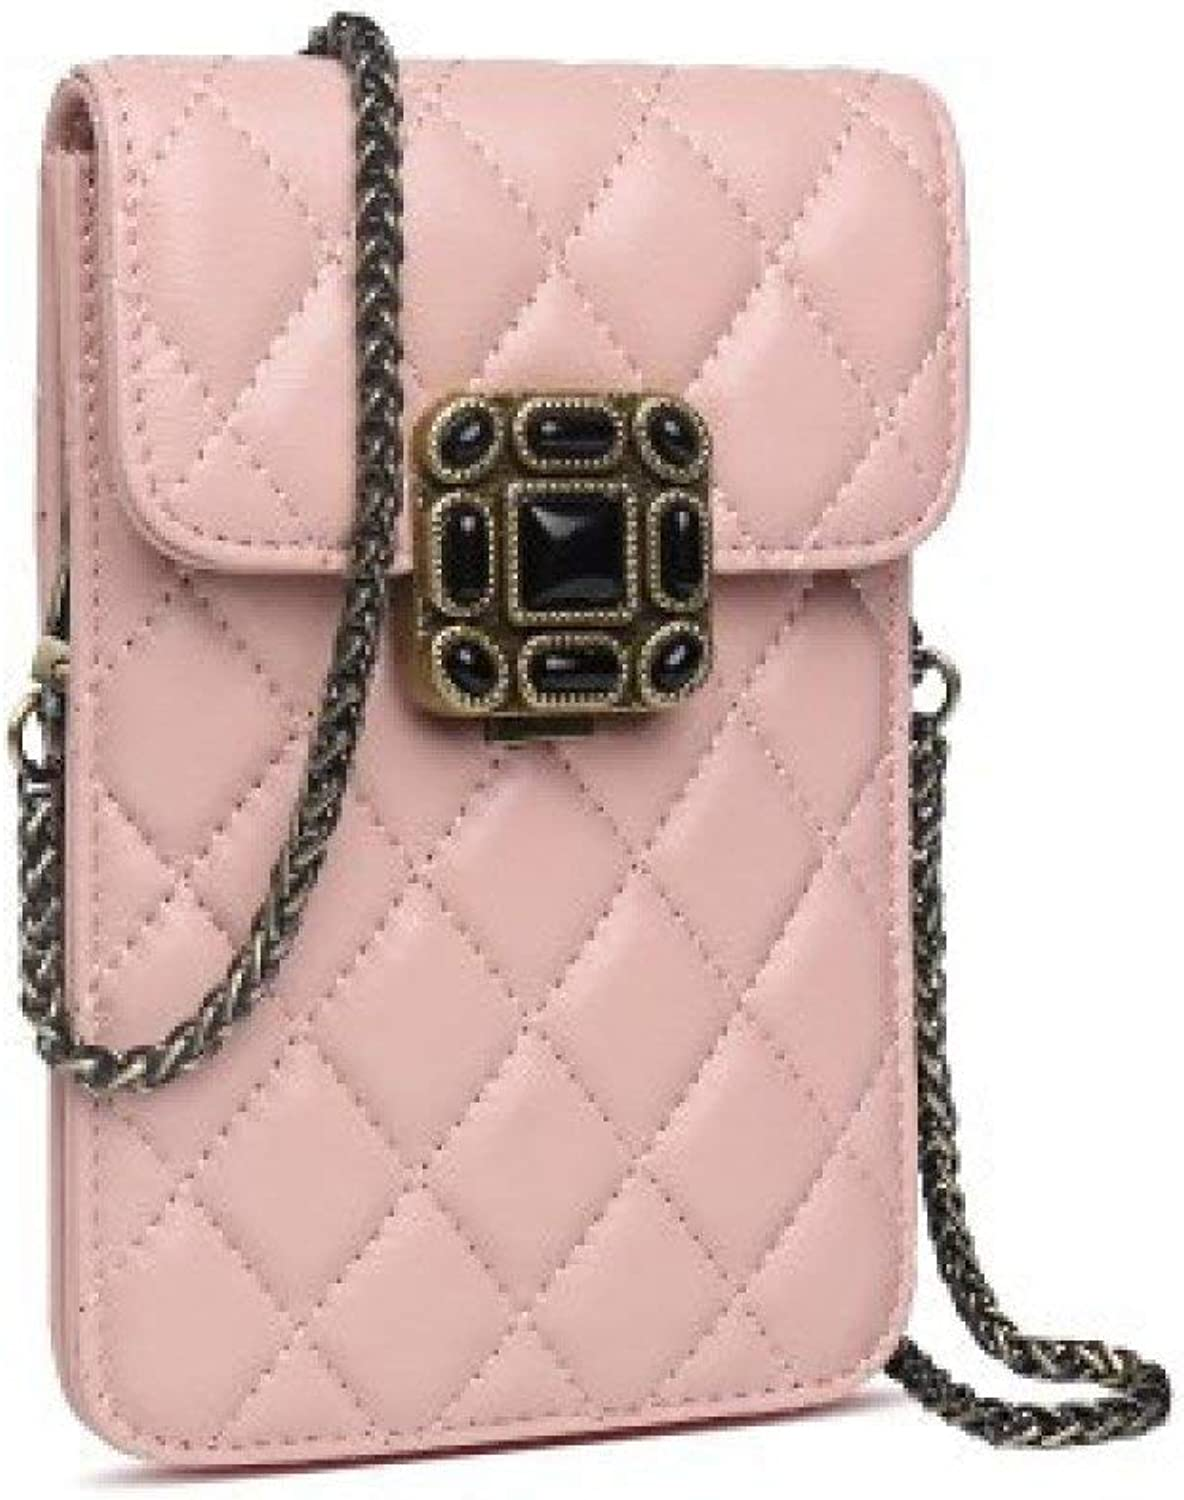 Ladies Handbag Mobile Phone Bags Women Europe \u0026 America Fashion Shoulder Bags Coin Purses Chain Bags (color   Pink, Size   One Size)